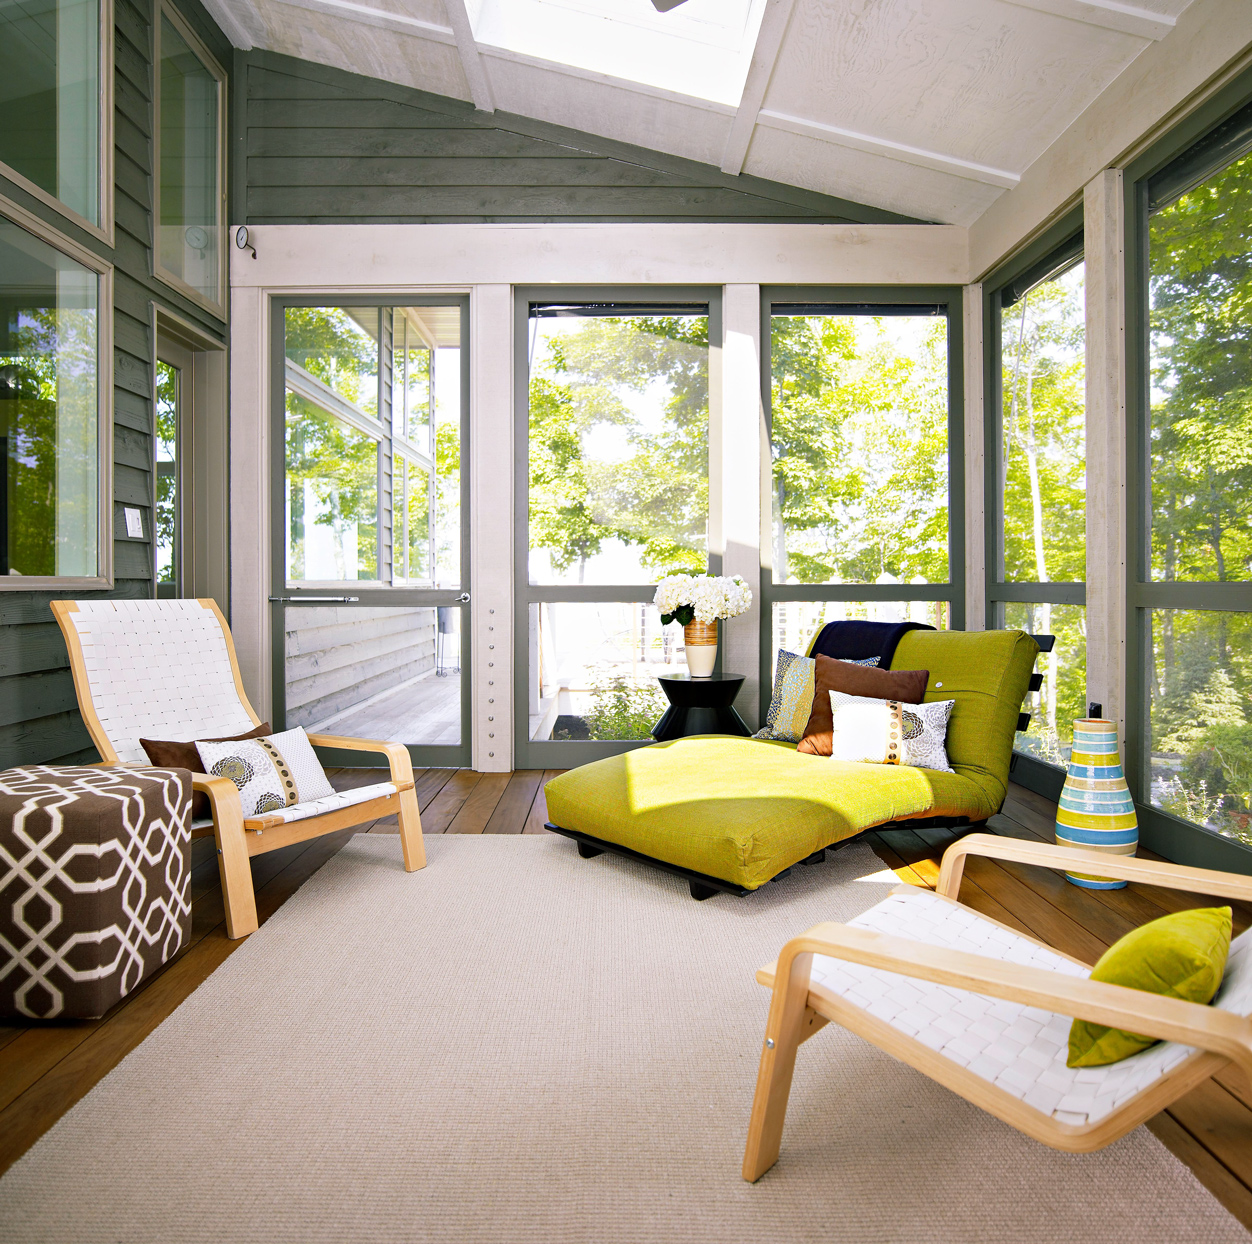 screened porch with lounge chairs